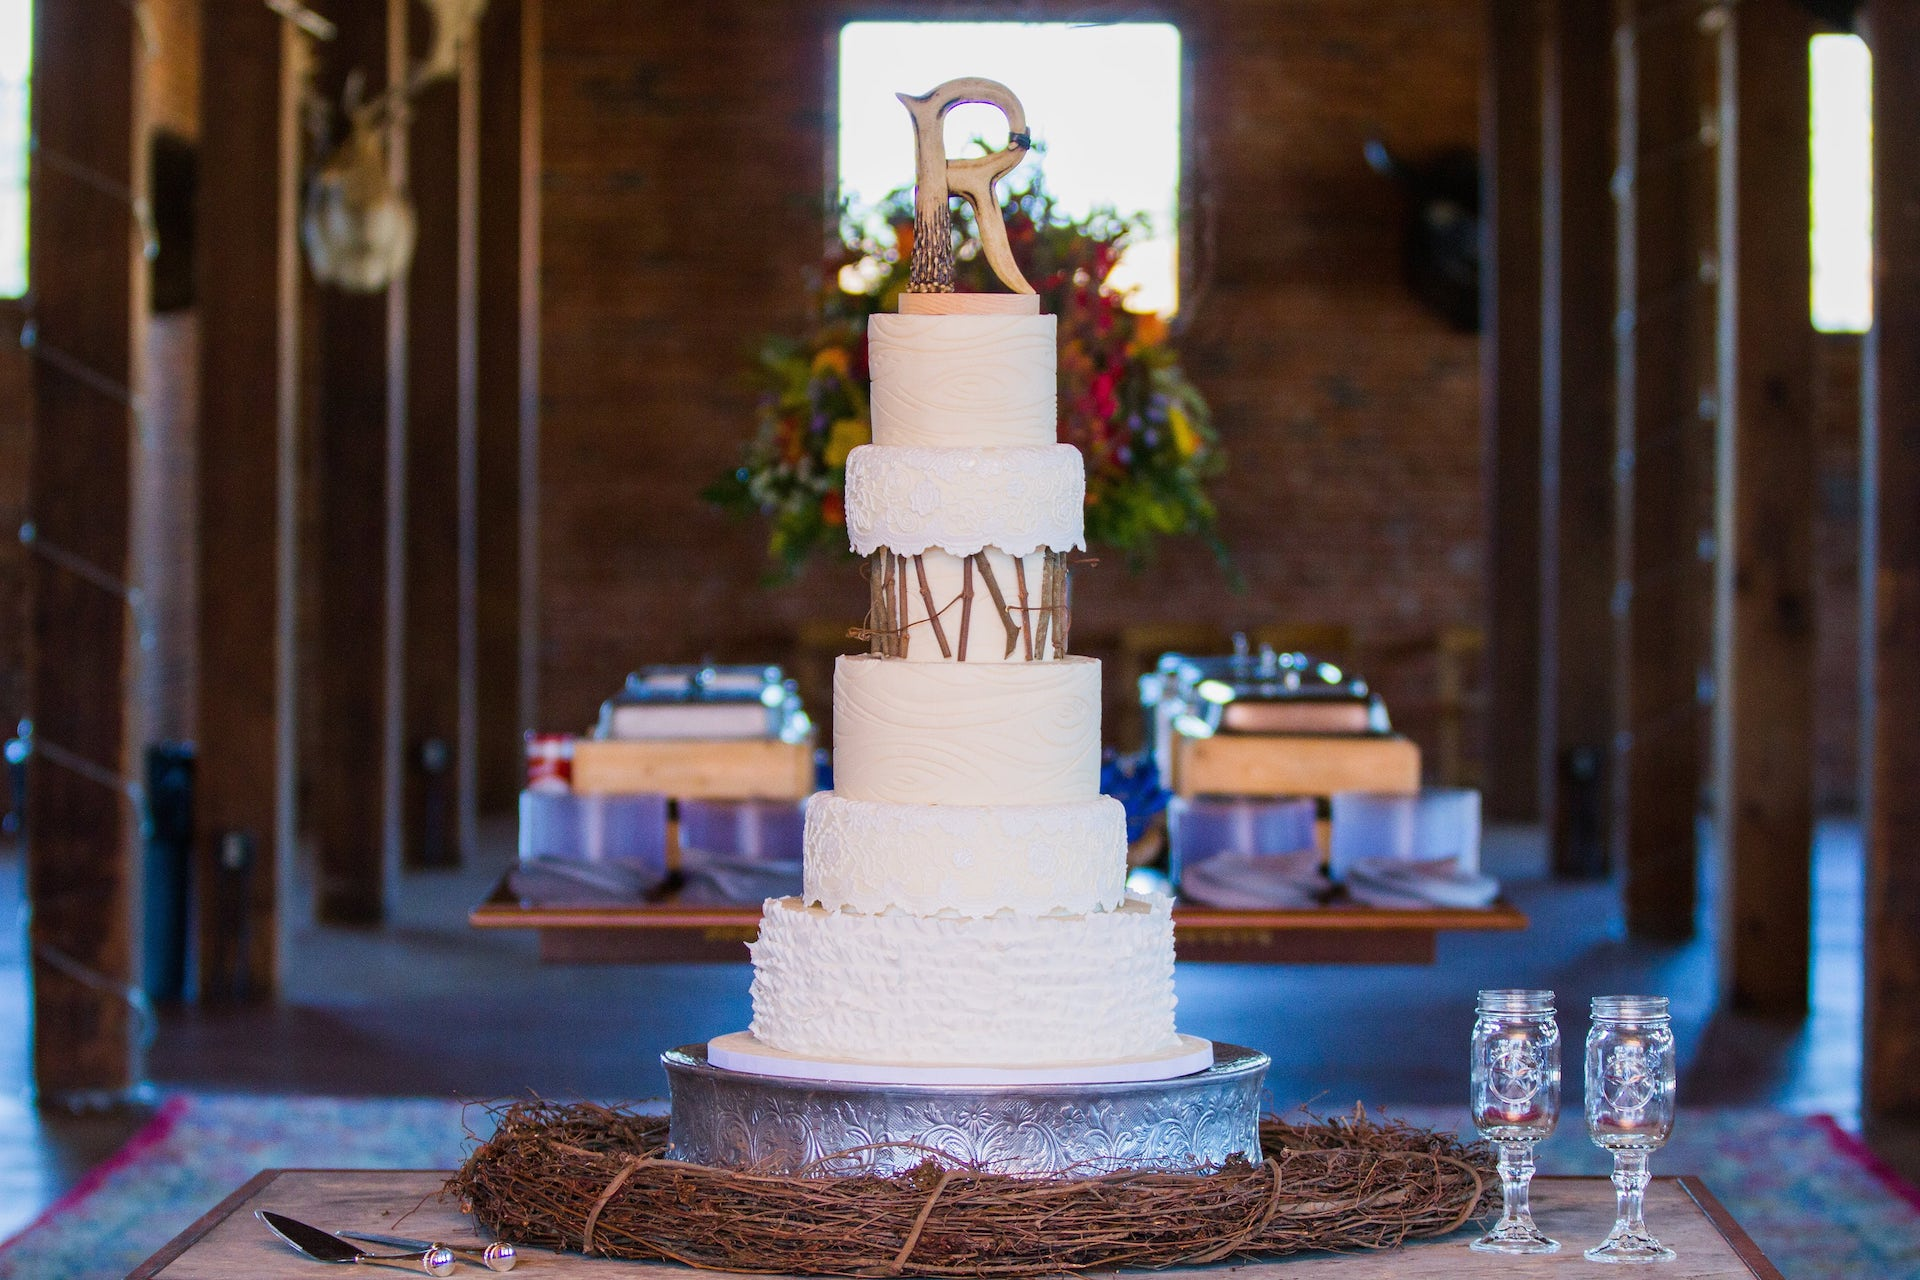 Rustic elegant wedding cake by Bonnie Brunt Cakes. Perfect look for a zoo wedding in the Ndoki Lodge!